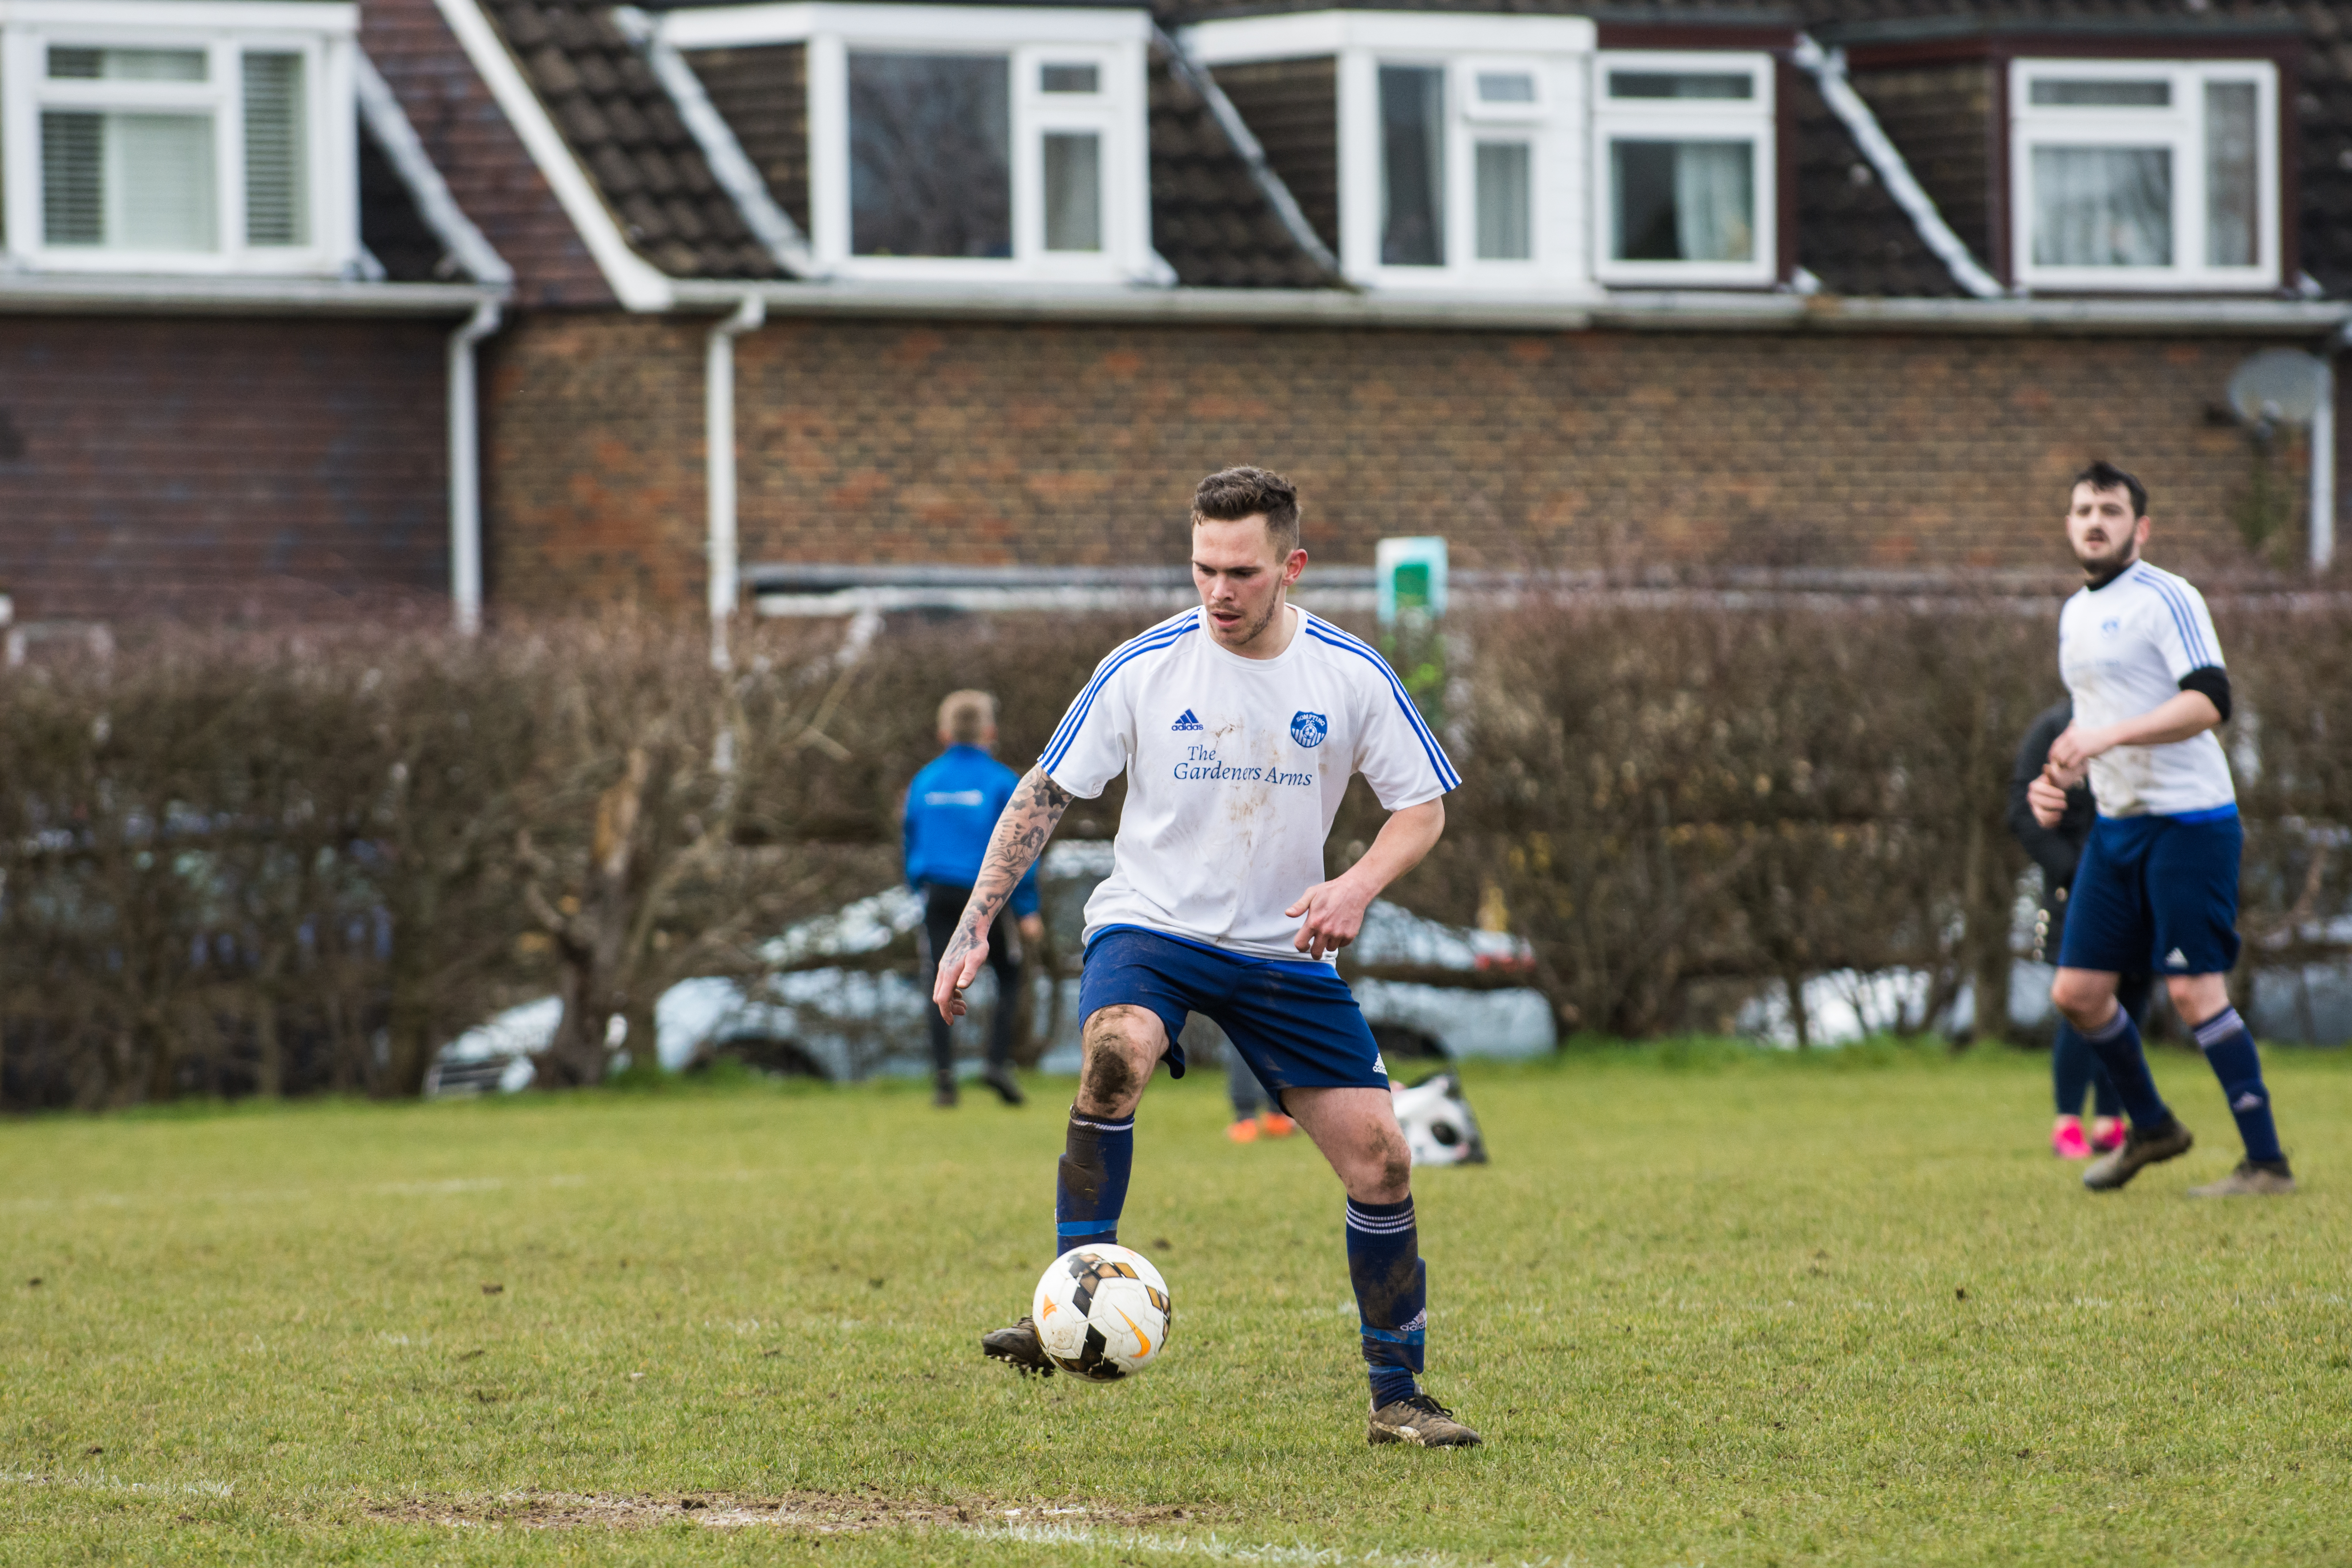 DAVID_JEFFERY FC Sporting vs Sompting 2nds 10.03.18 74